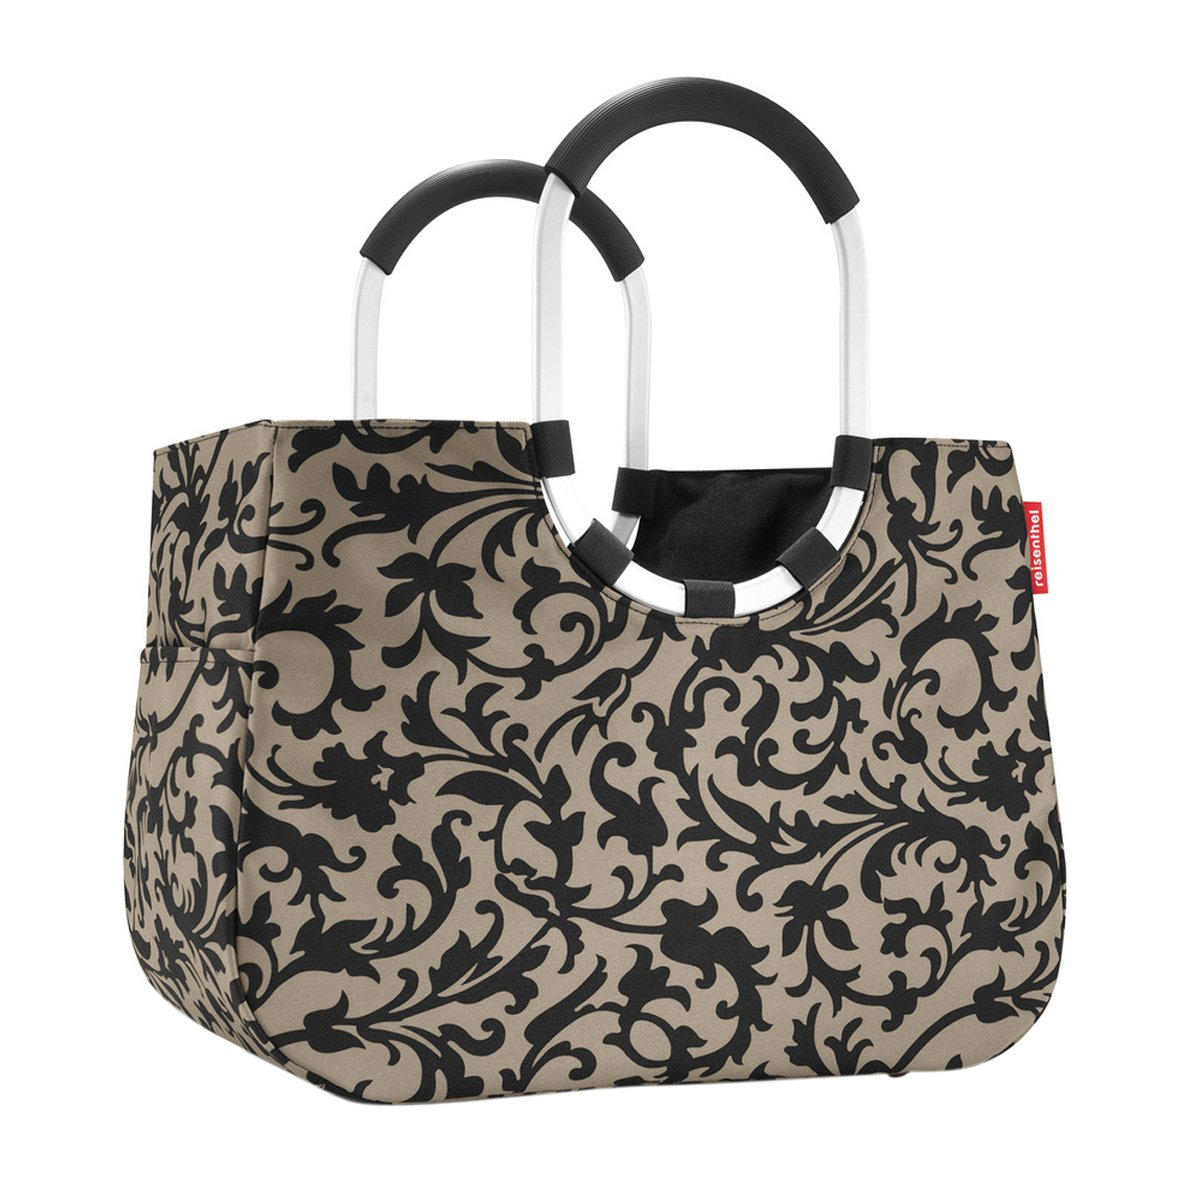 Loopshopper L – Color a elegir, poliéster, gris/barroco Reisenthel